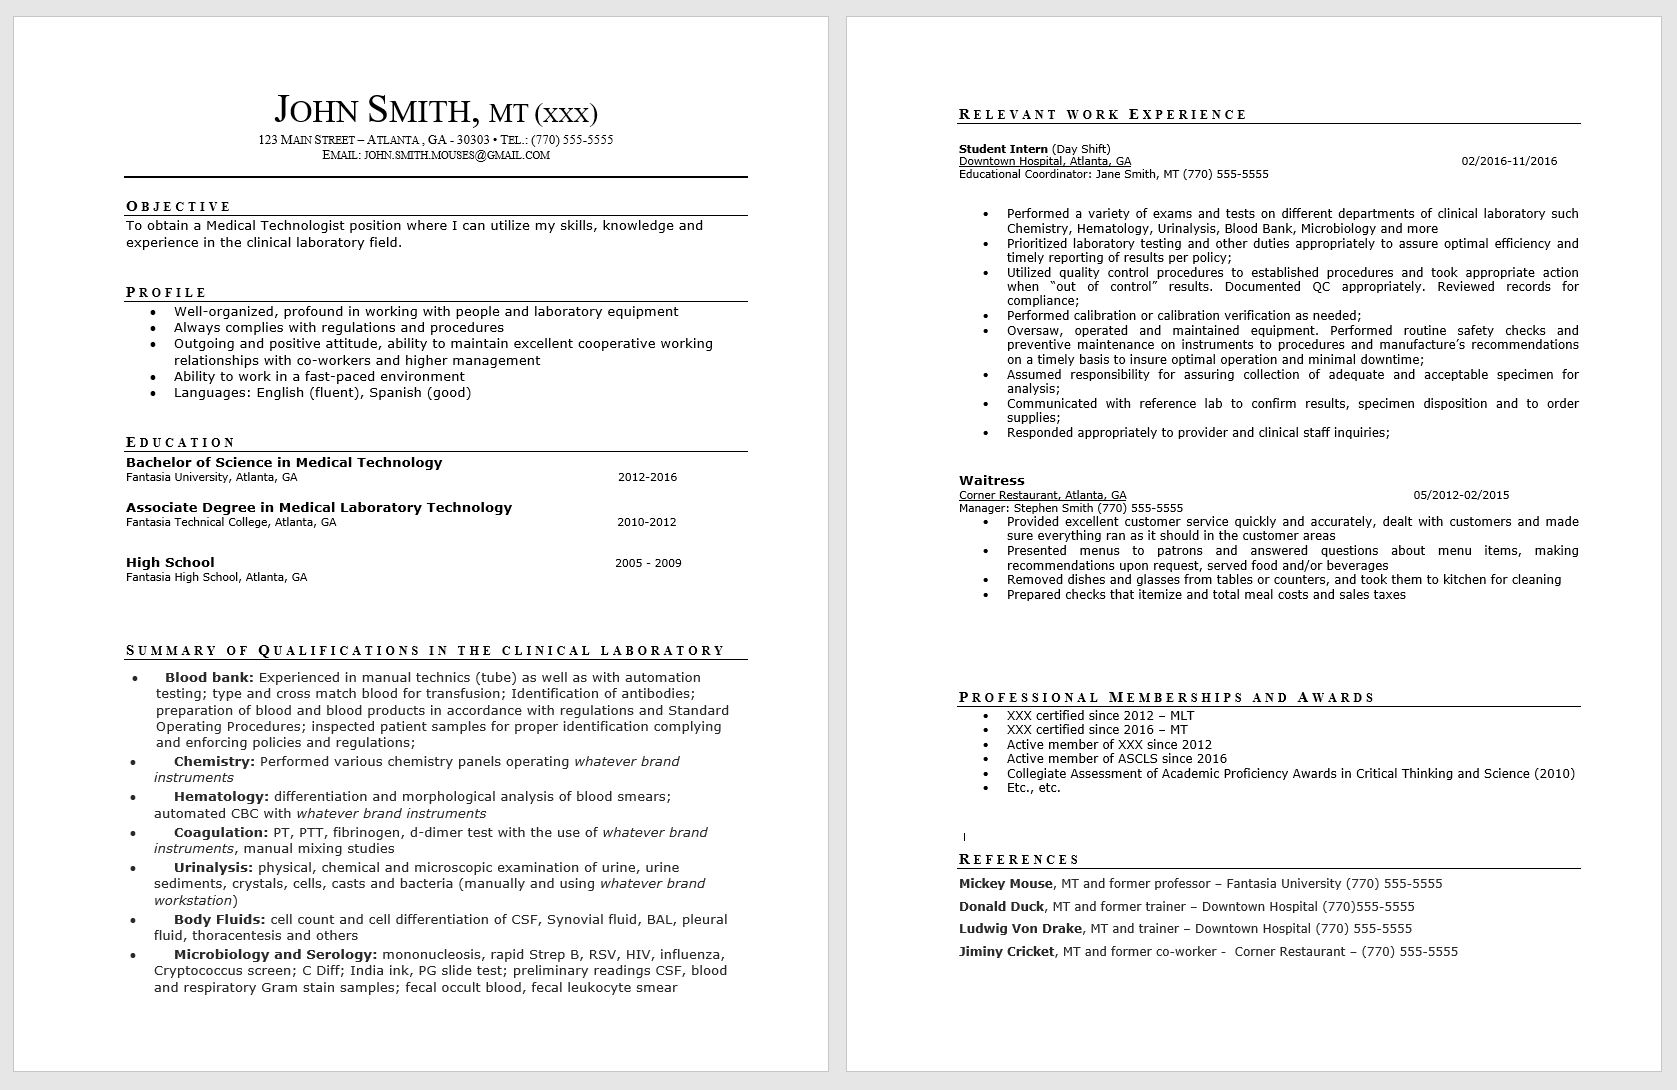 Create Your Core Resume With An Objective And Profile For A Generalist Med  Tech. This Version Of Your Resume Can Be Used For Any Job Application.